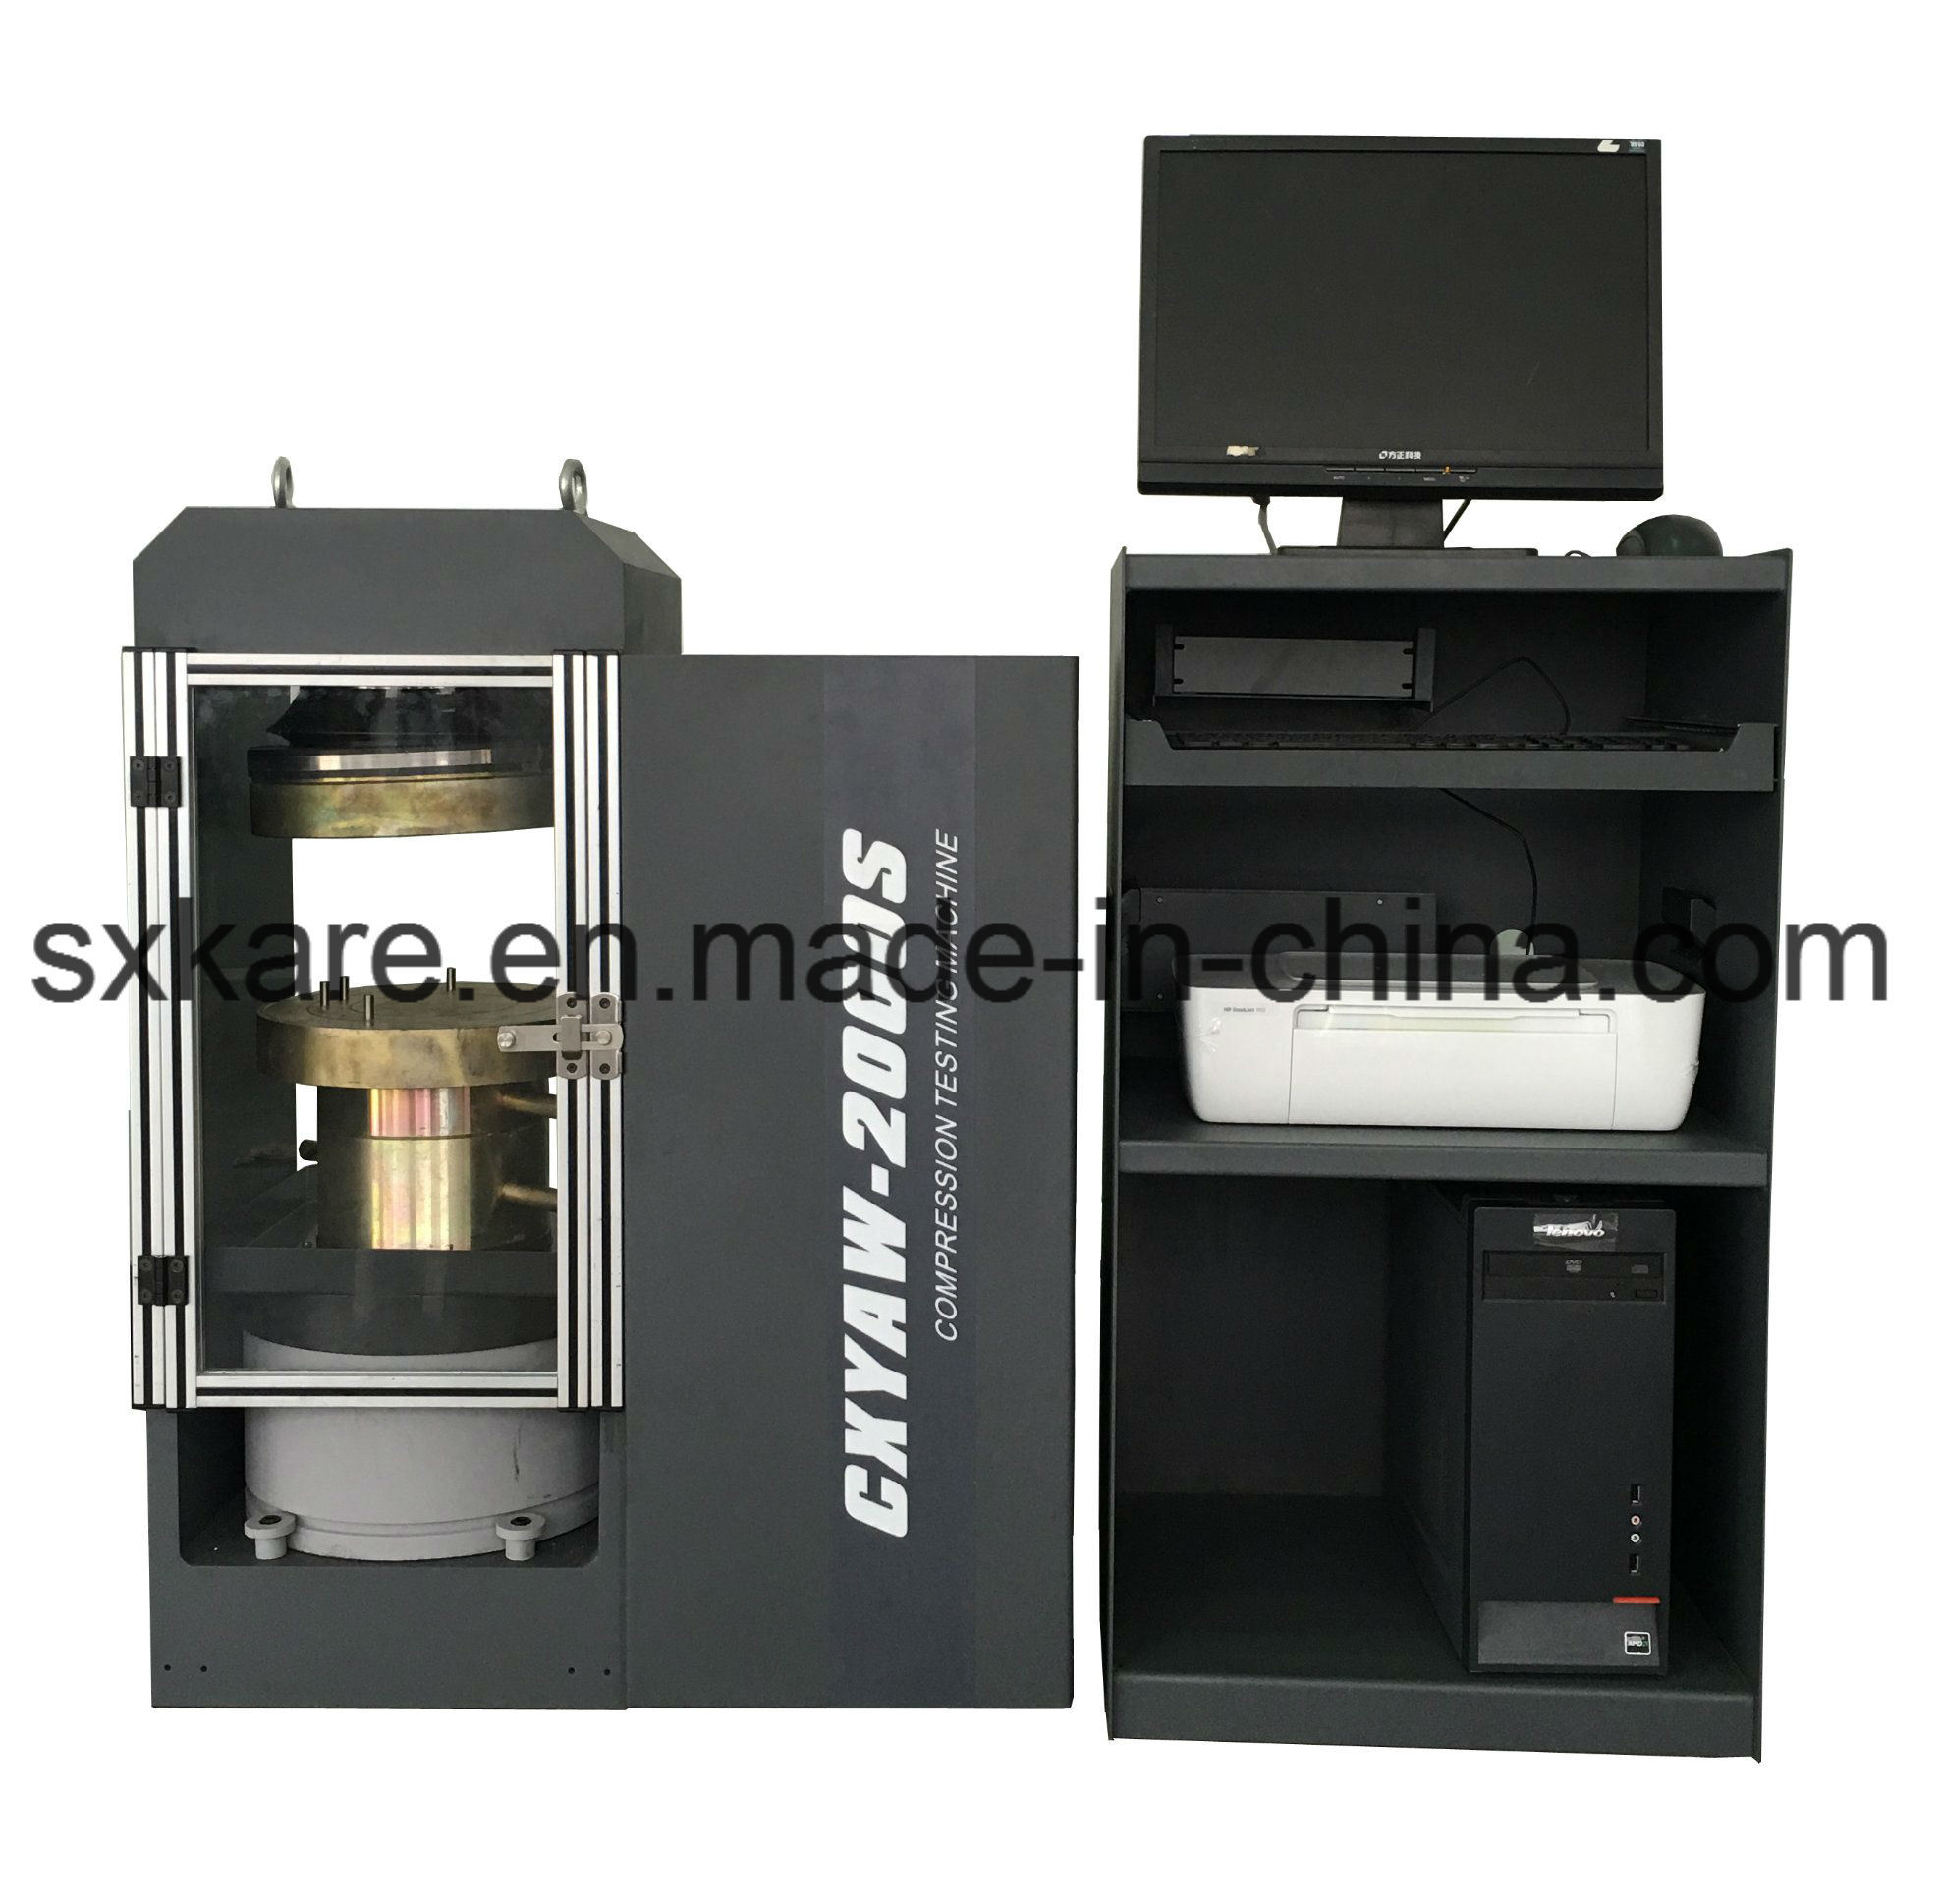 0.5 Grade Computerized Electr0-Hydraulic Servo Compression Testing Machine (CXYAW-2000S)